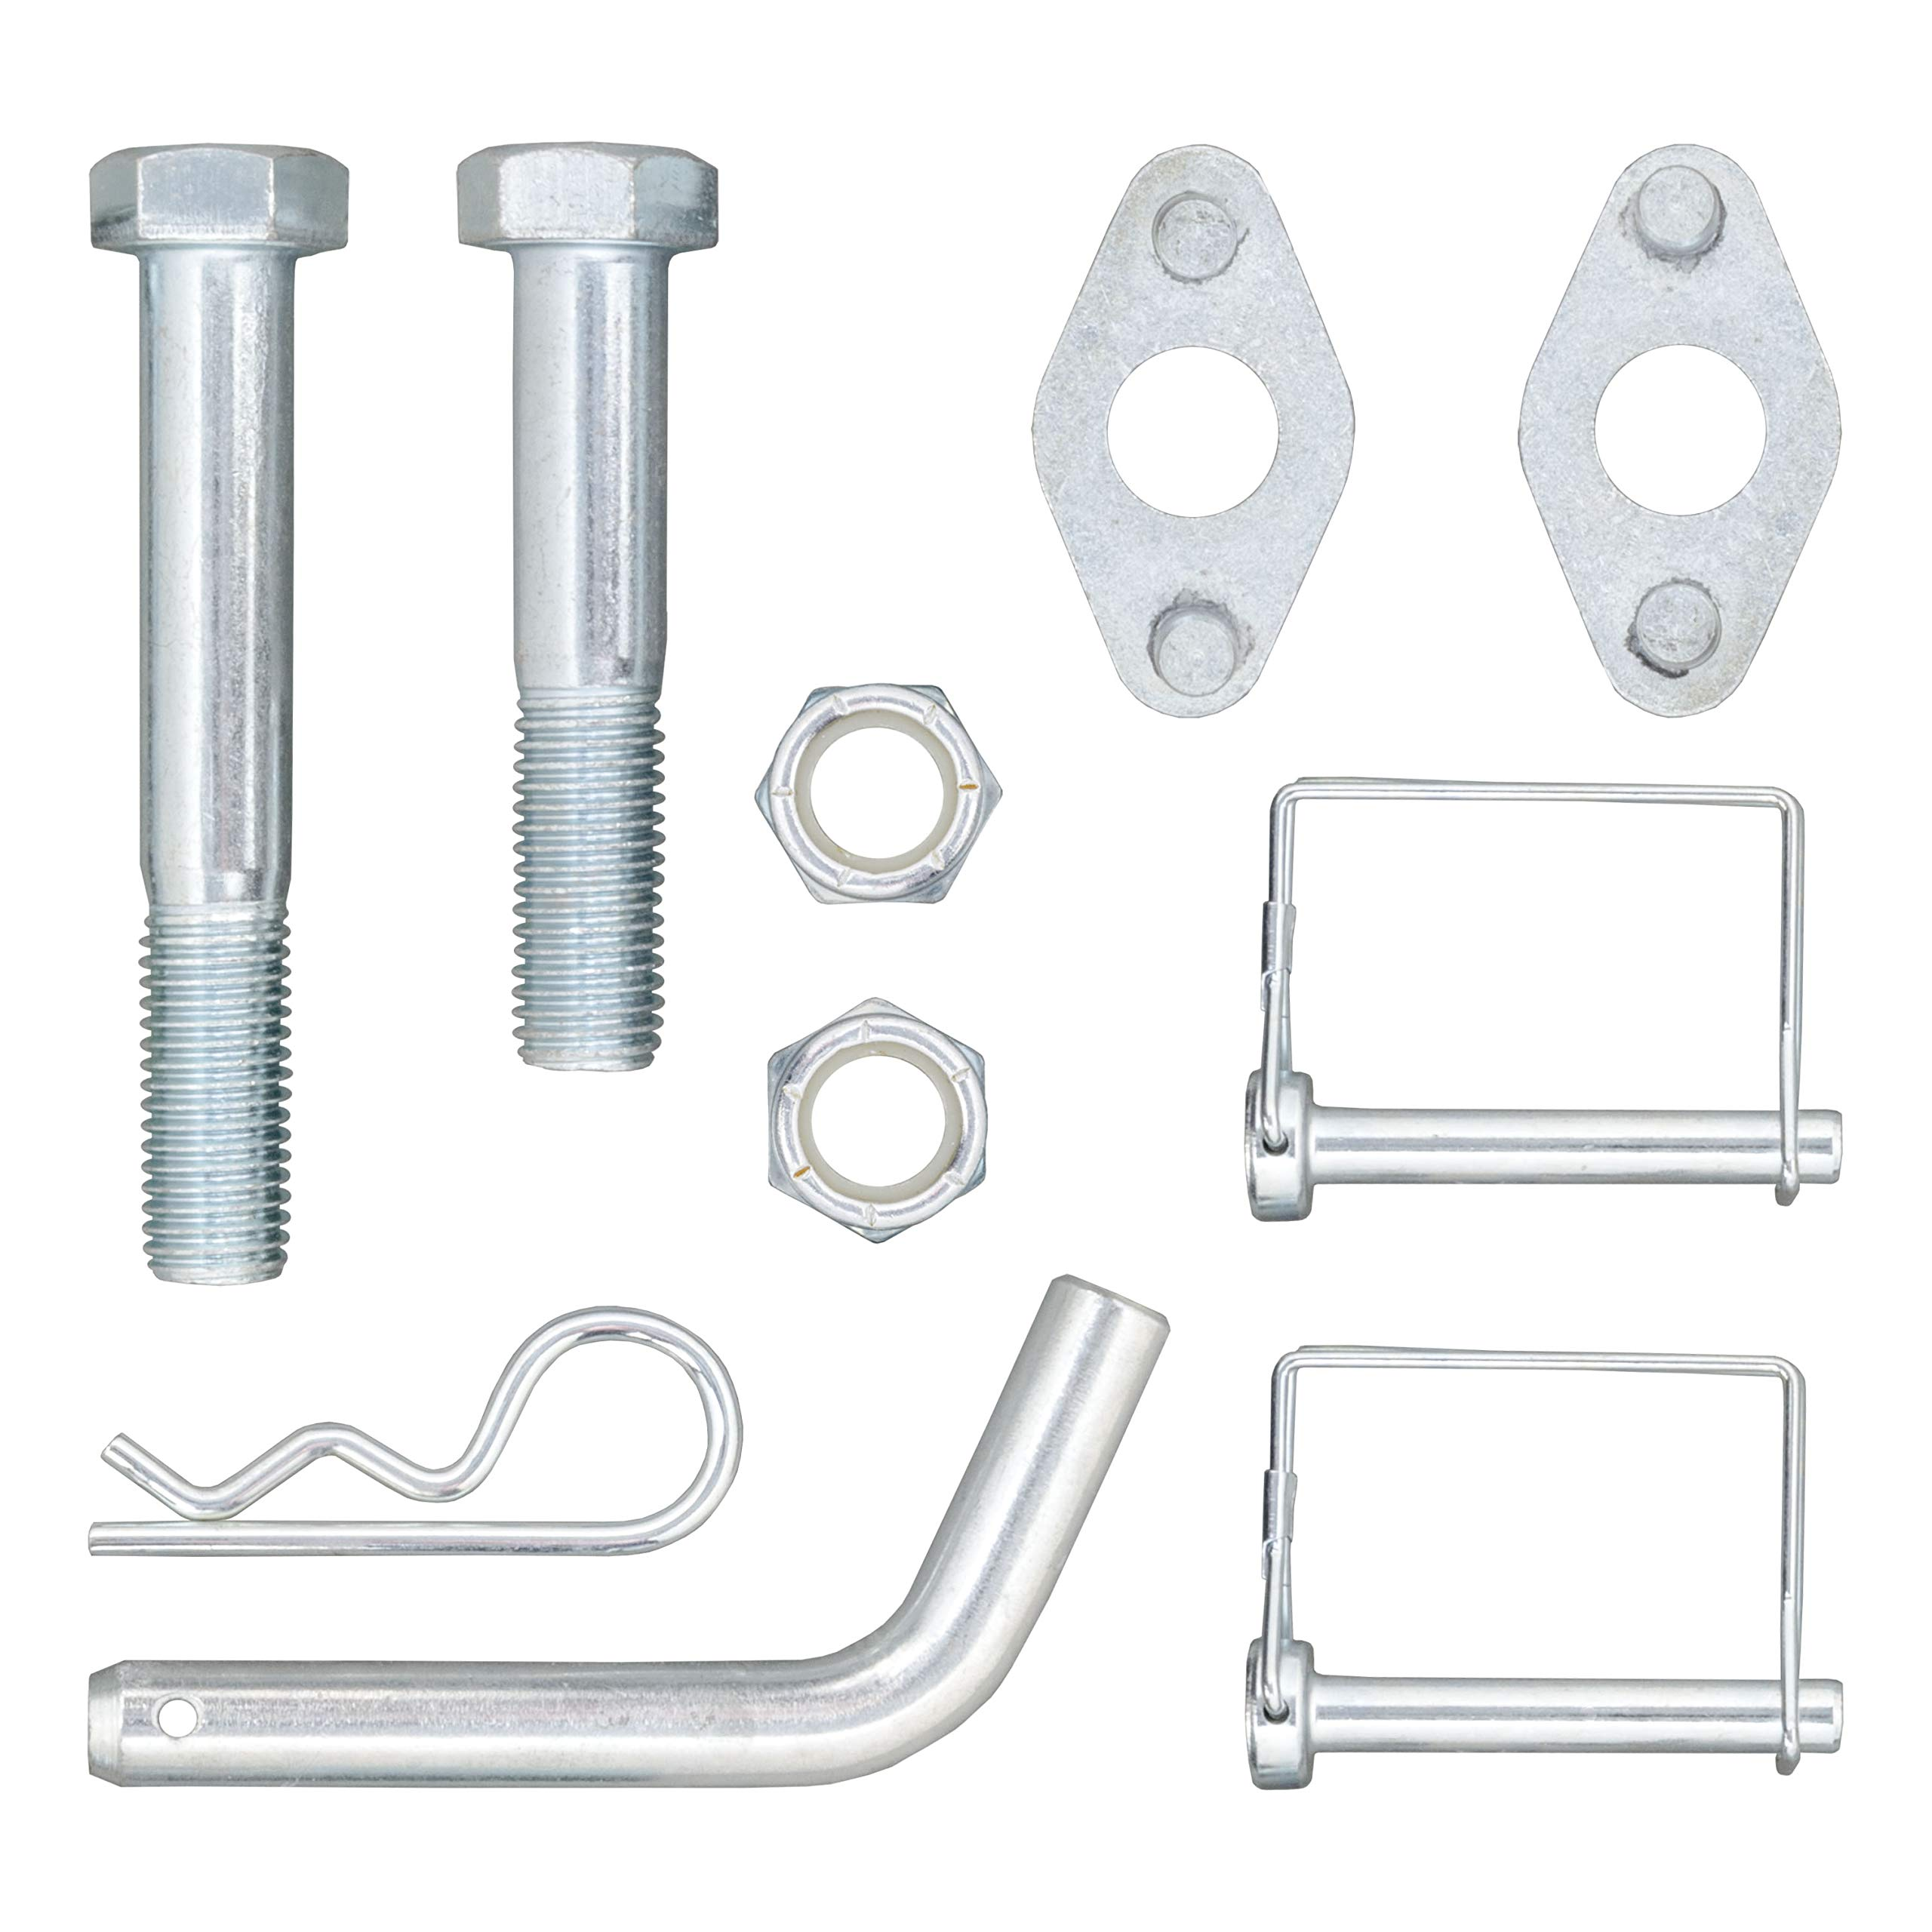 CURT 17550 TruTrack Weight Distribution Hardware Kit by CURT